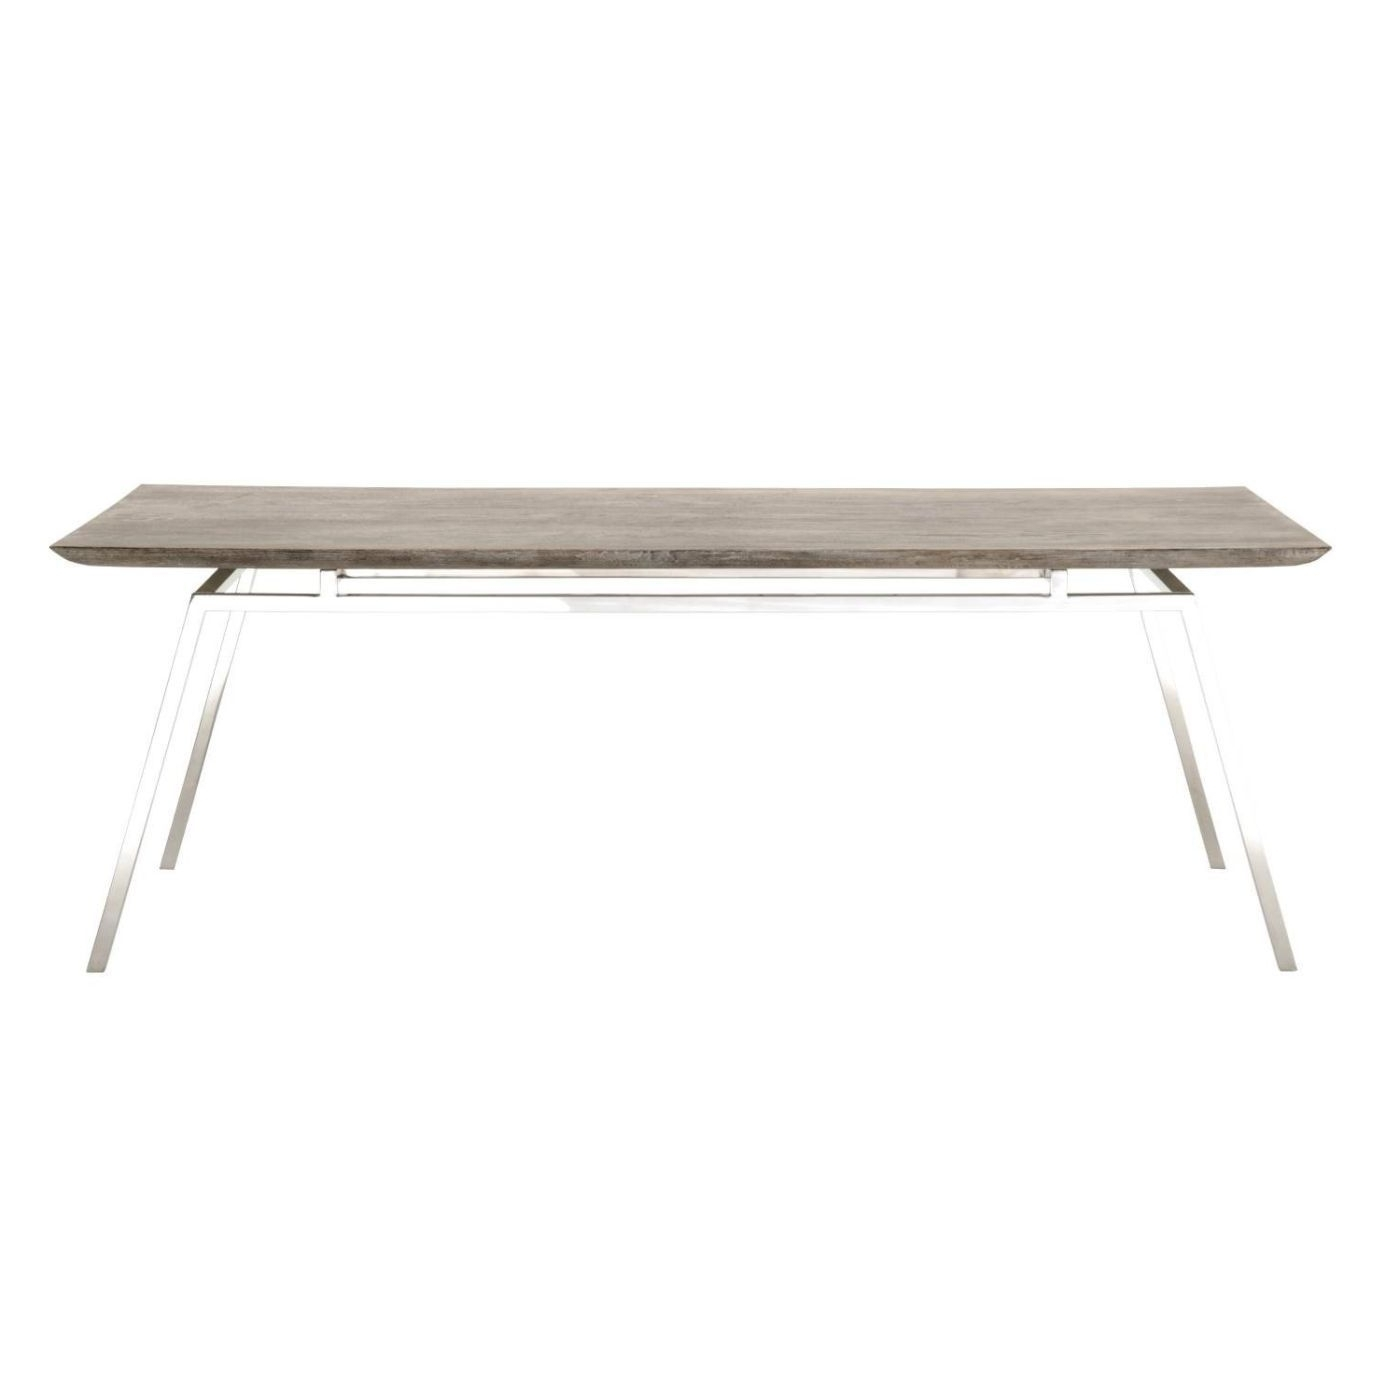 Most Popular Benson Rectangle Dining Tables With Regard To Benson Dining Table Sand Wash Oak, Stainless Steel (View 2 of 25)